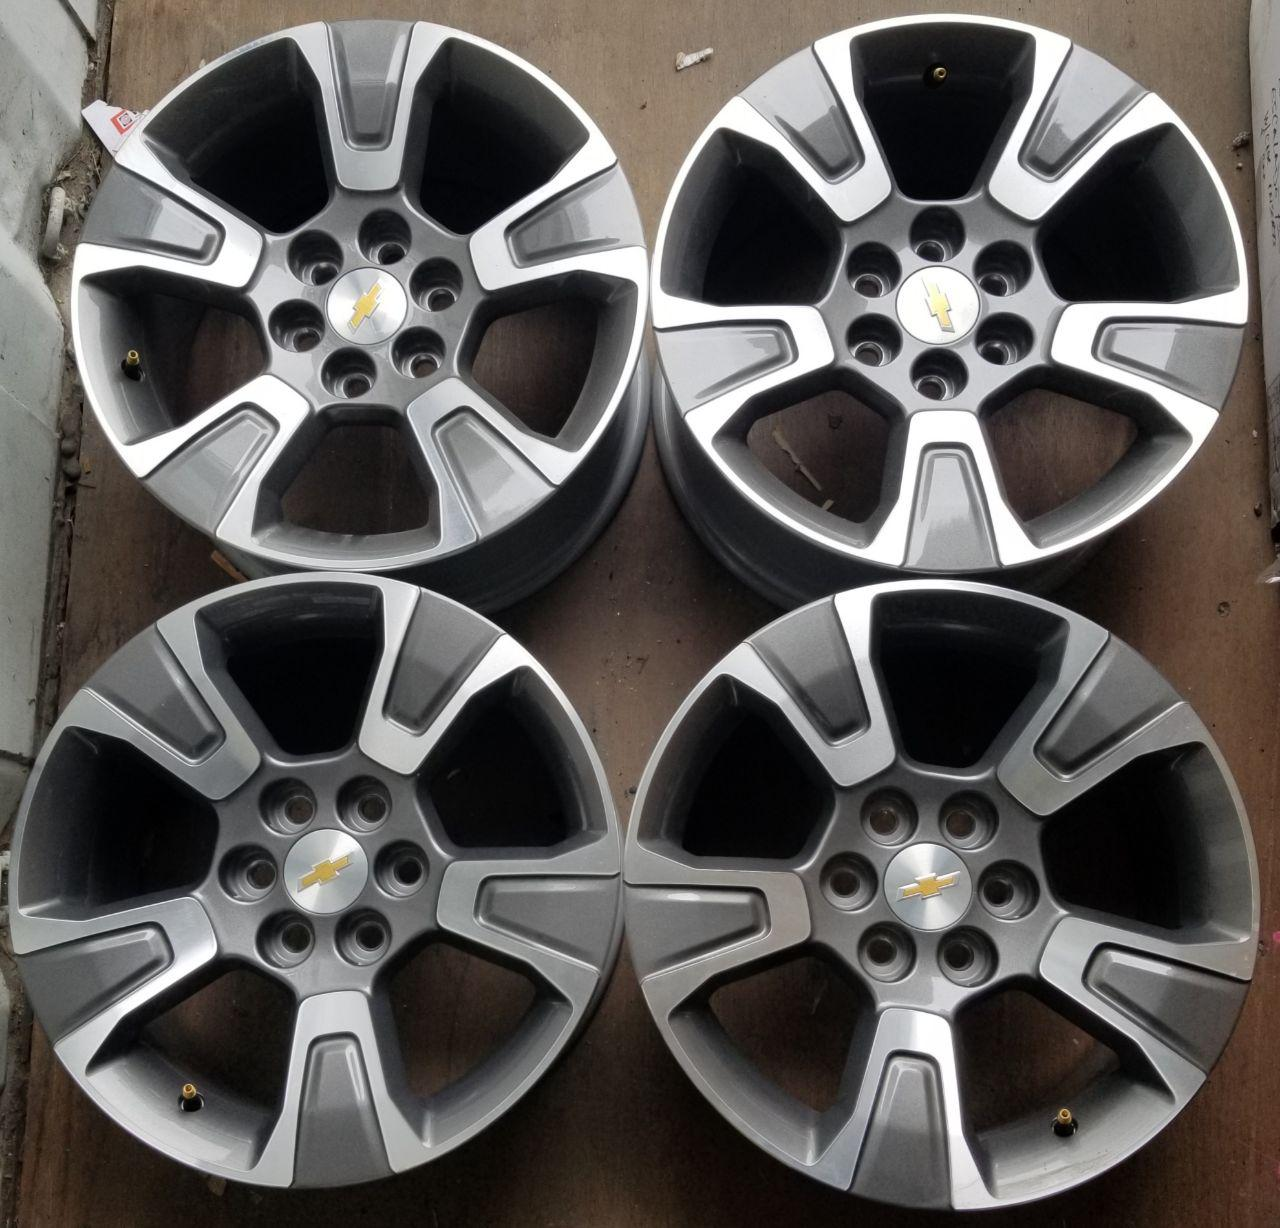 - OEM WHEELS - 2015-2018 GM COLORADO 17x8 5 SPOKE Hollander #5671 /  USED